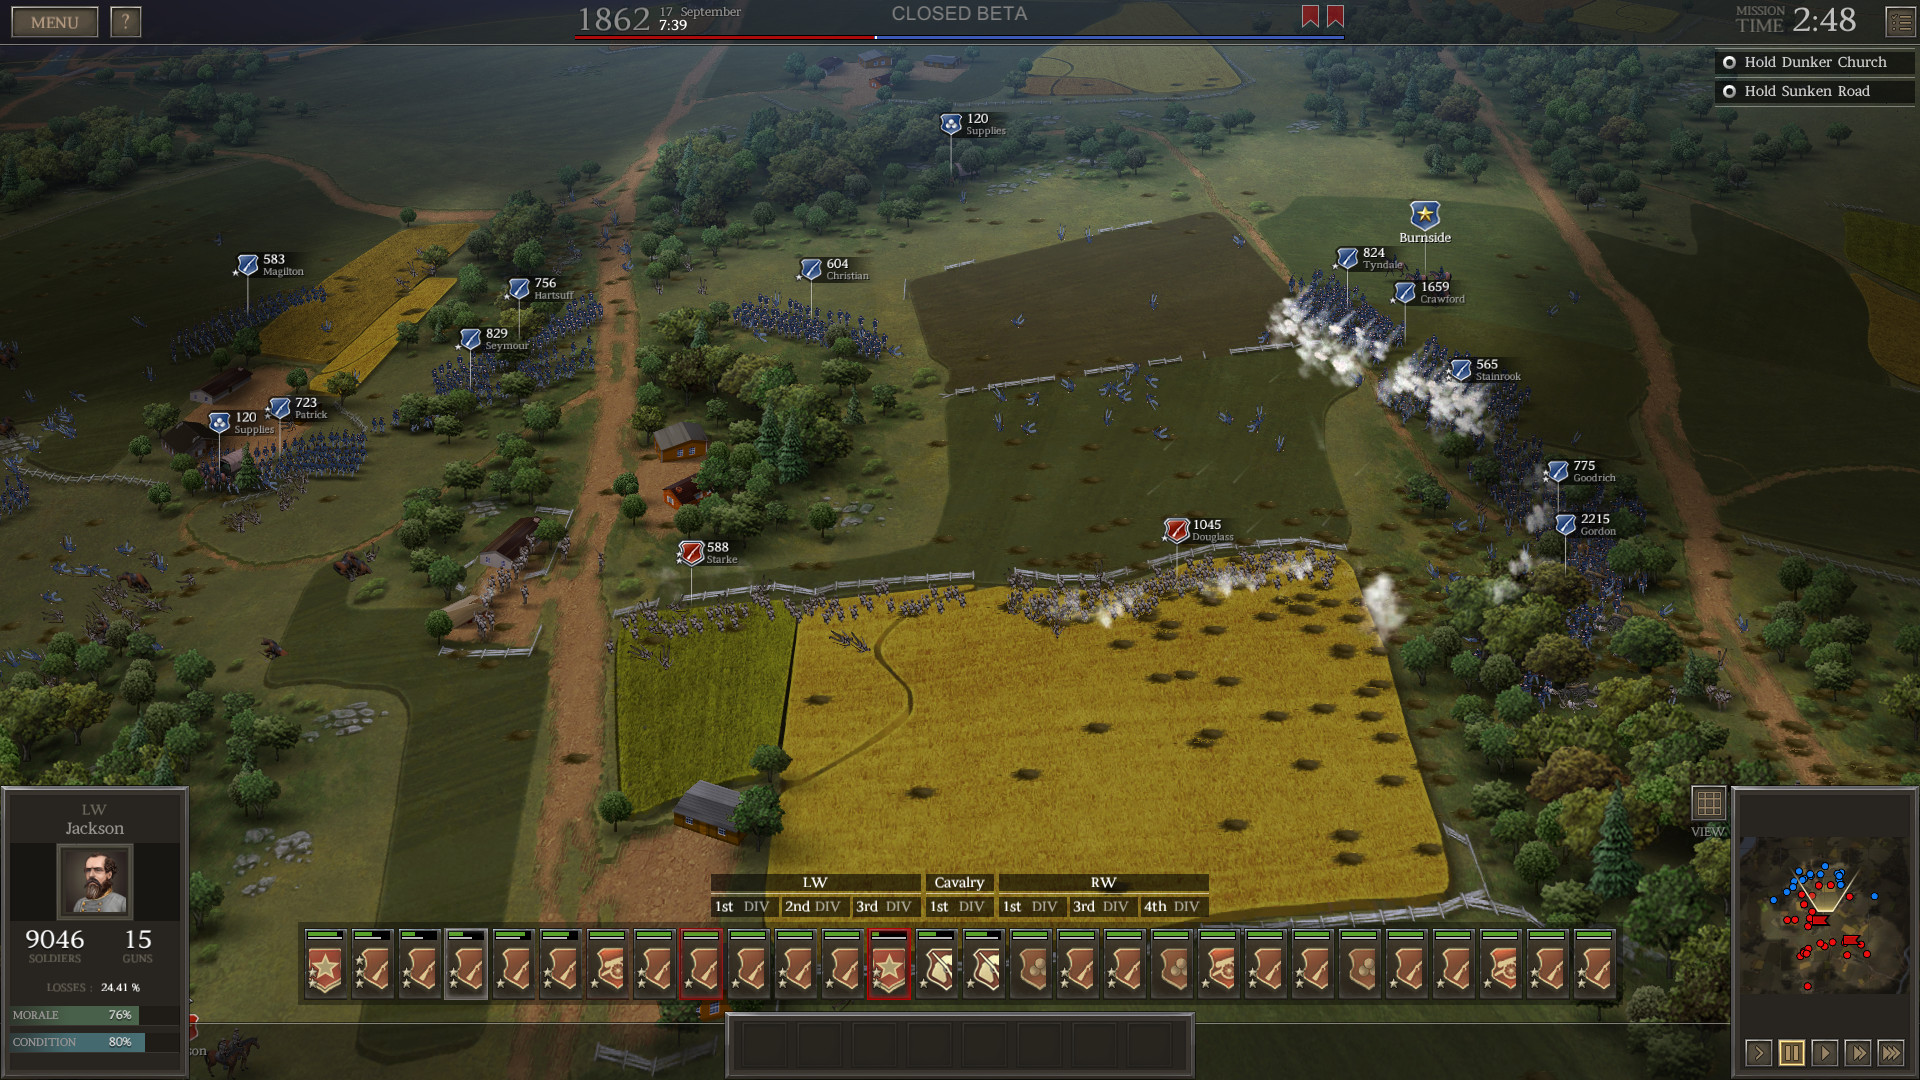 Ultimate General: Civil War screenshot 1